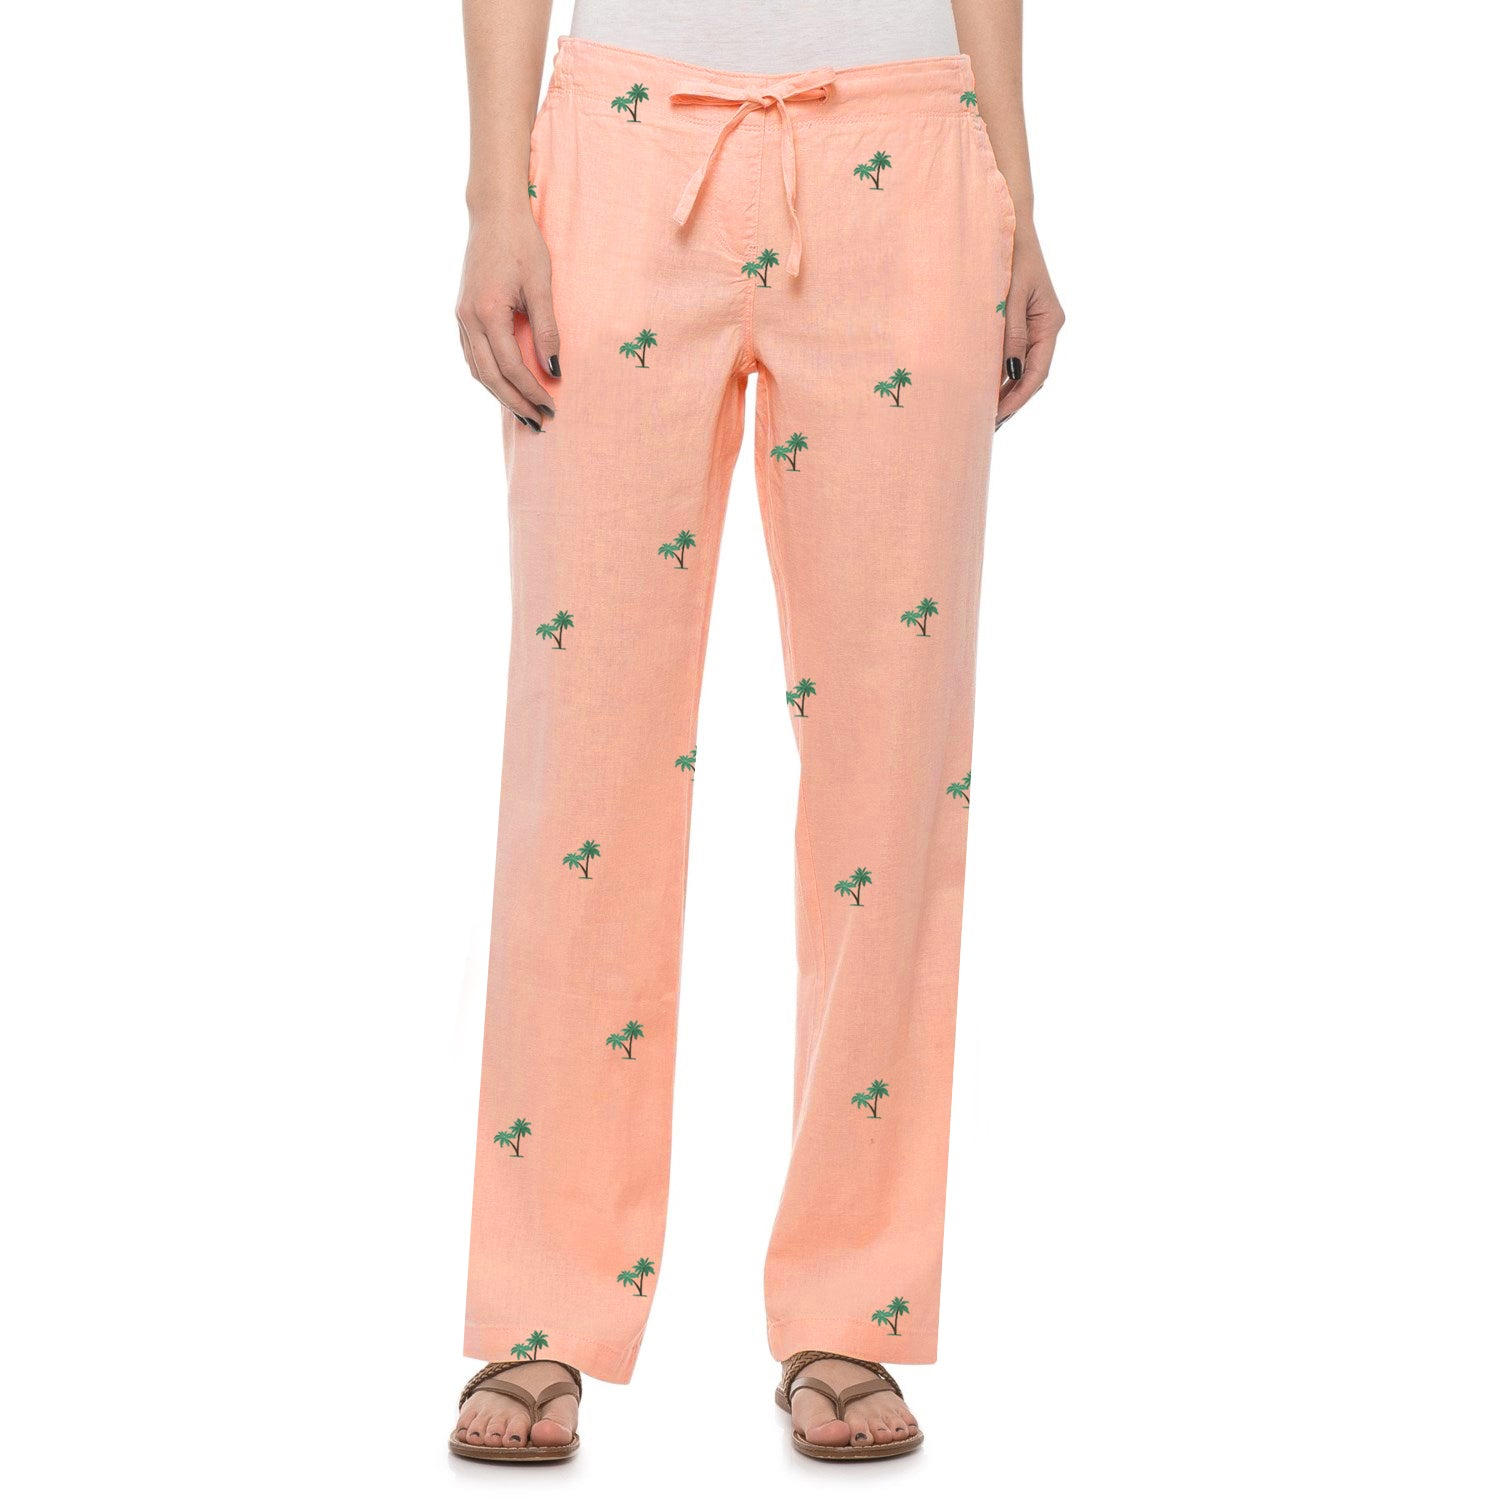 Next Straight Fit Single Jersey Trouser For Ladies-Allover Print Light Peach-NA8732